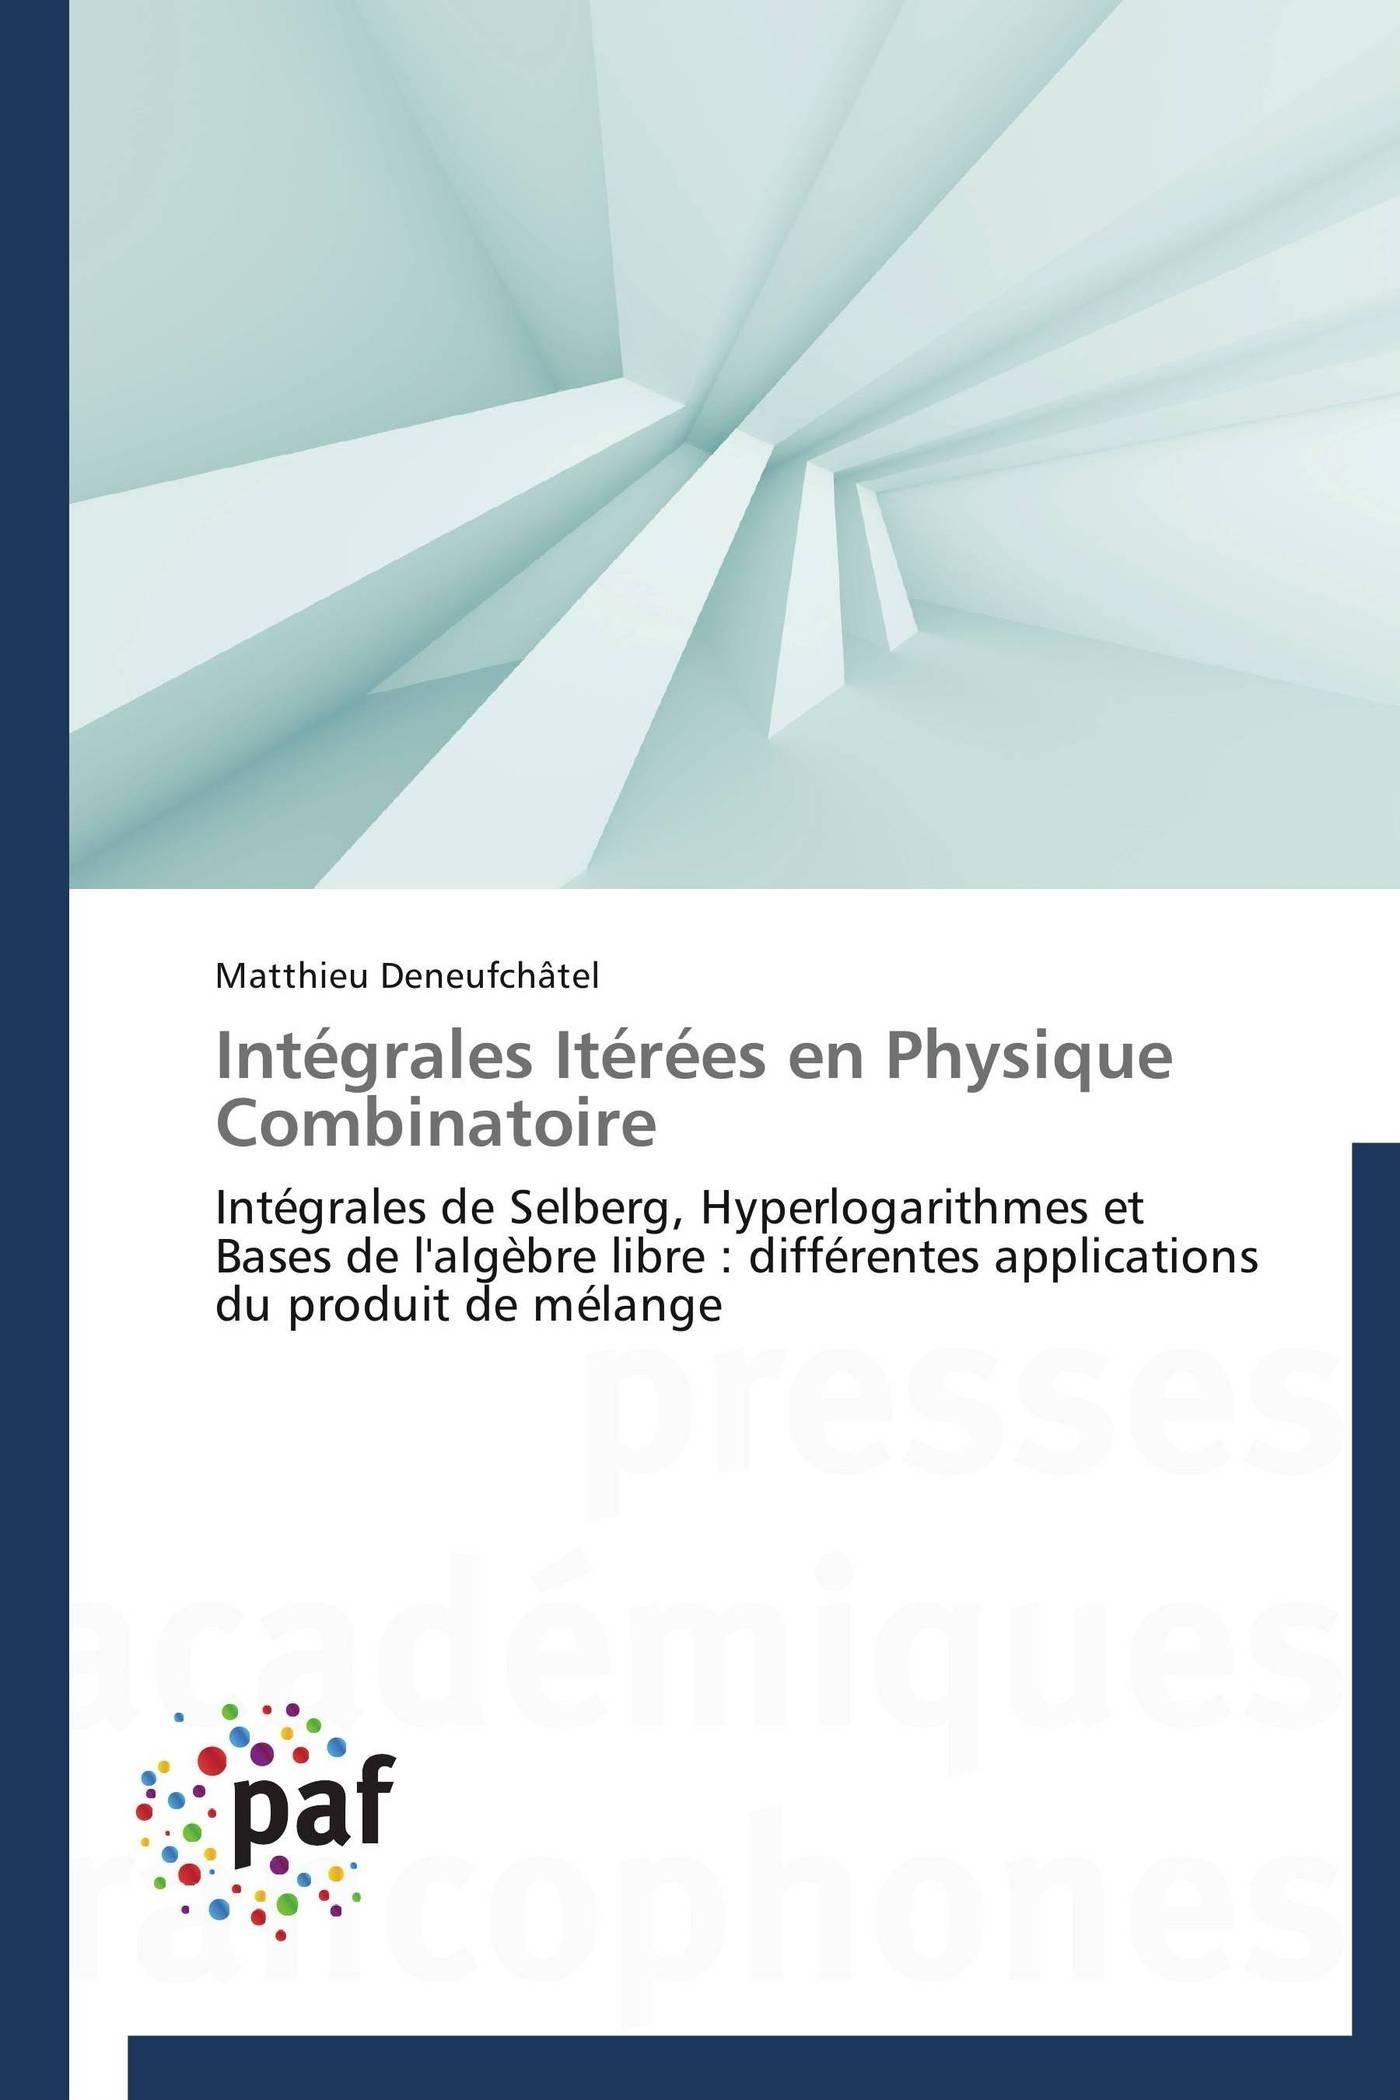 INTEGRALES ITEREES EN PHYSIQUE COMBINATOIRE